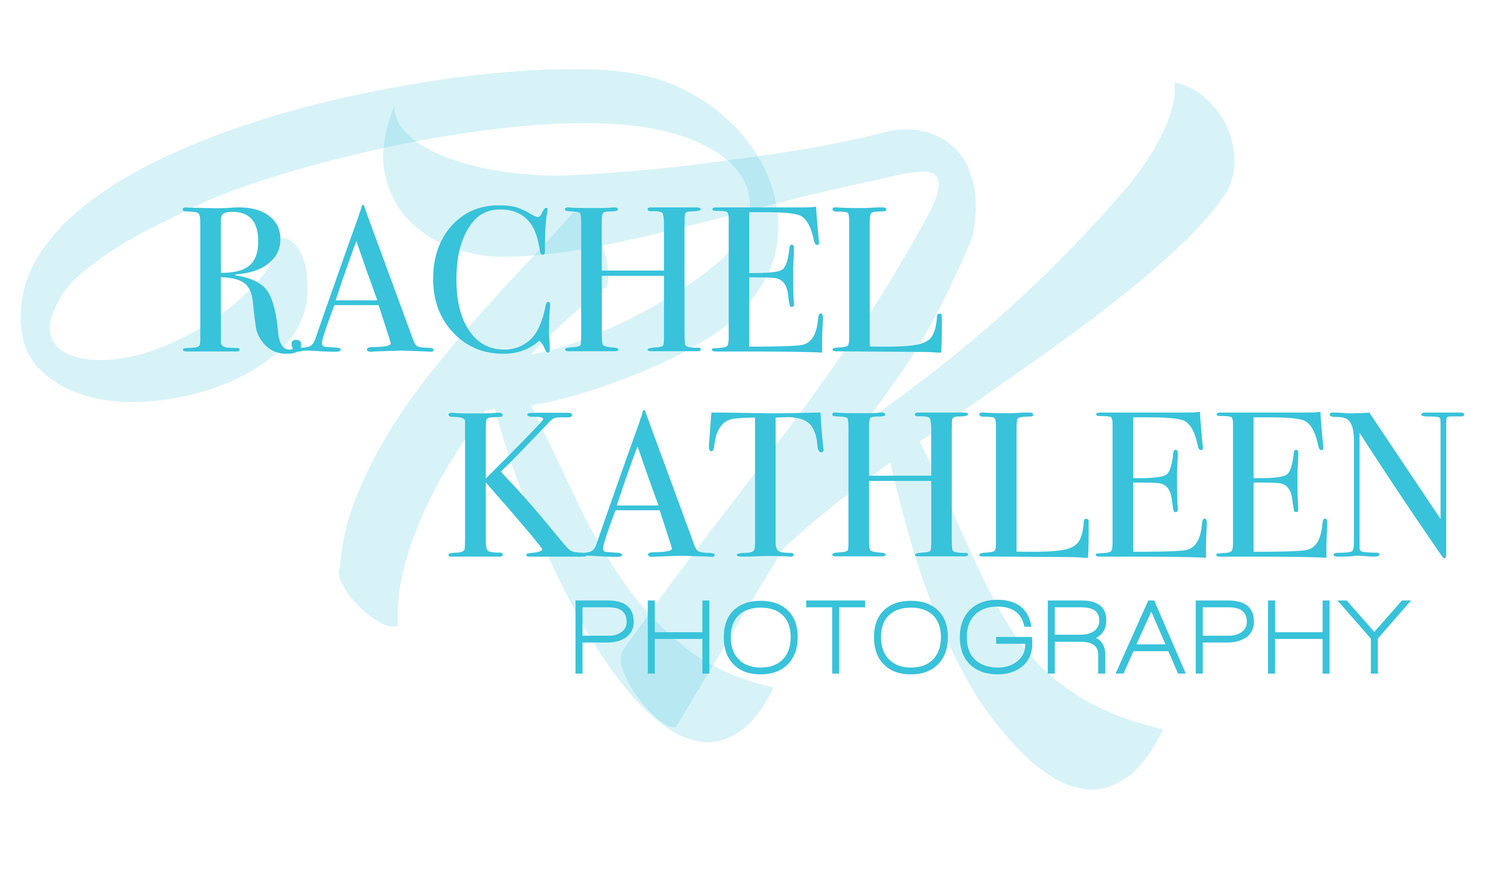 Rachel Kathleen Photography